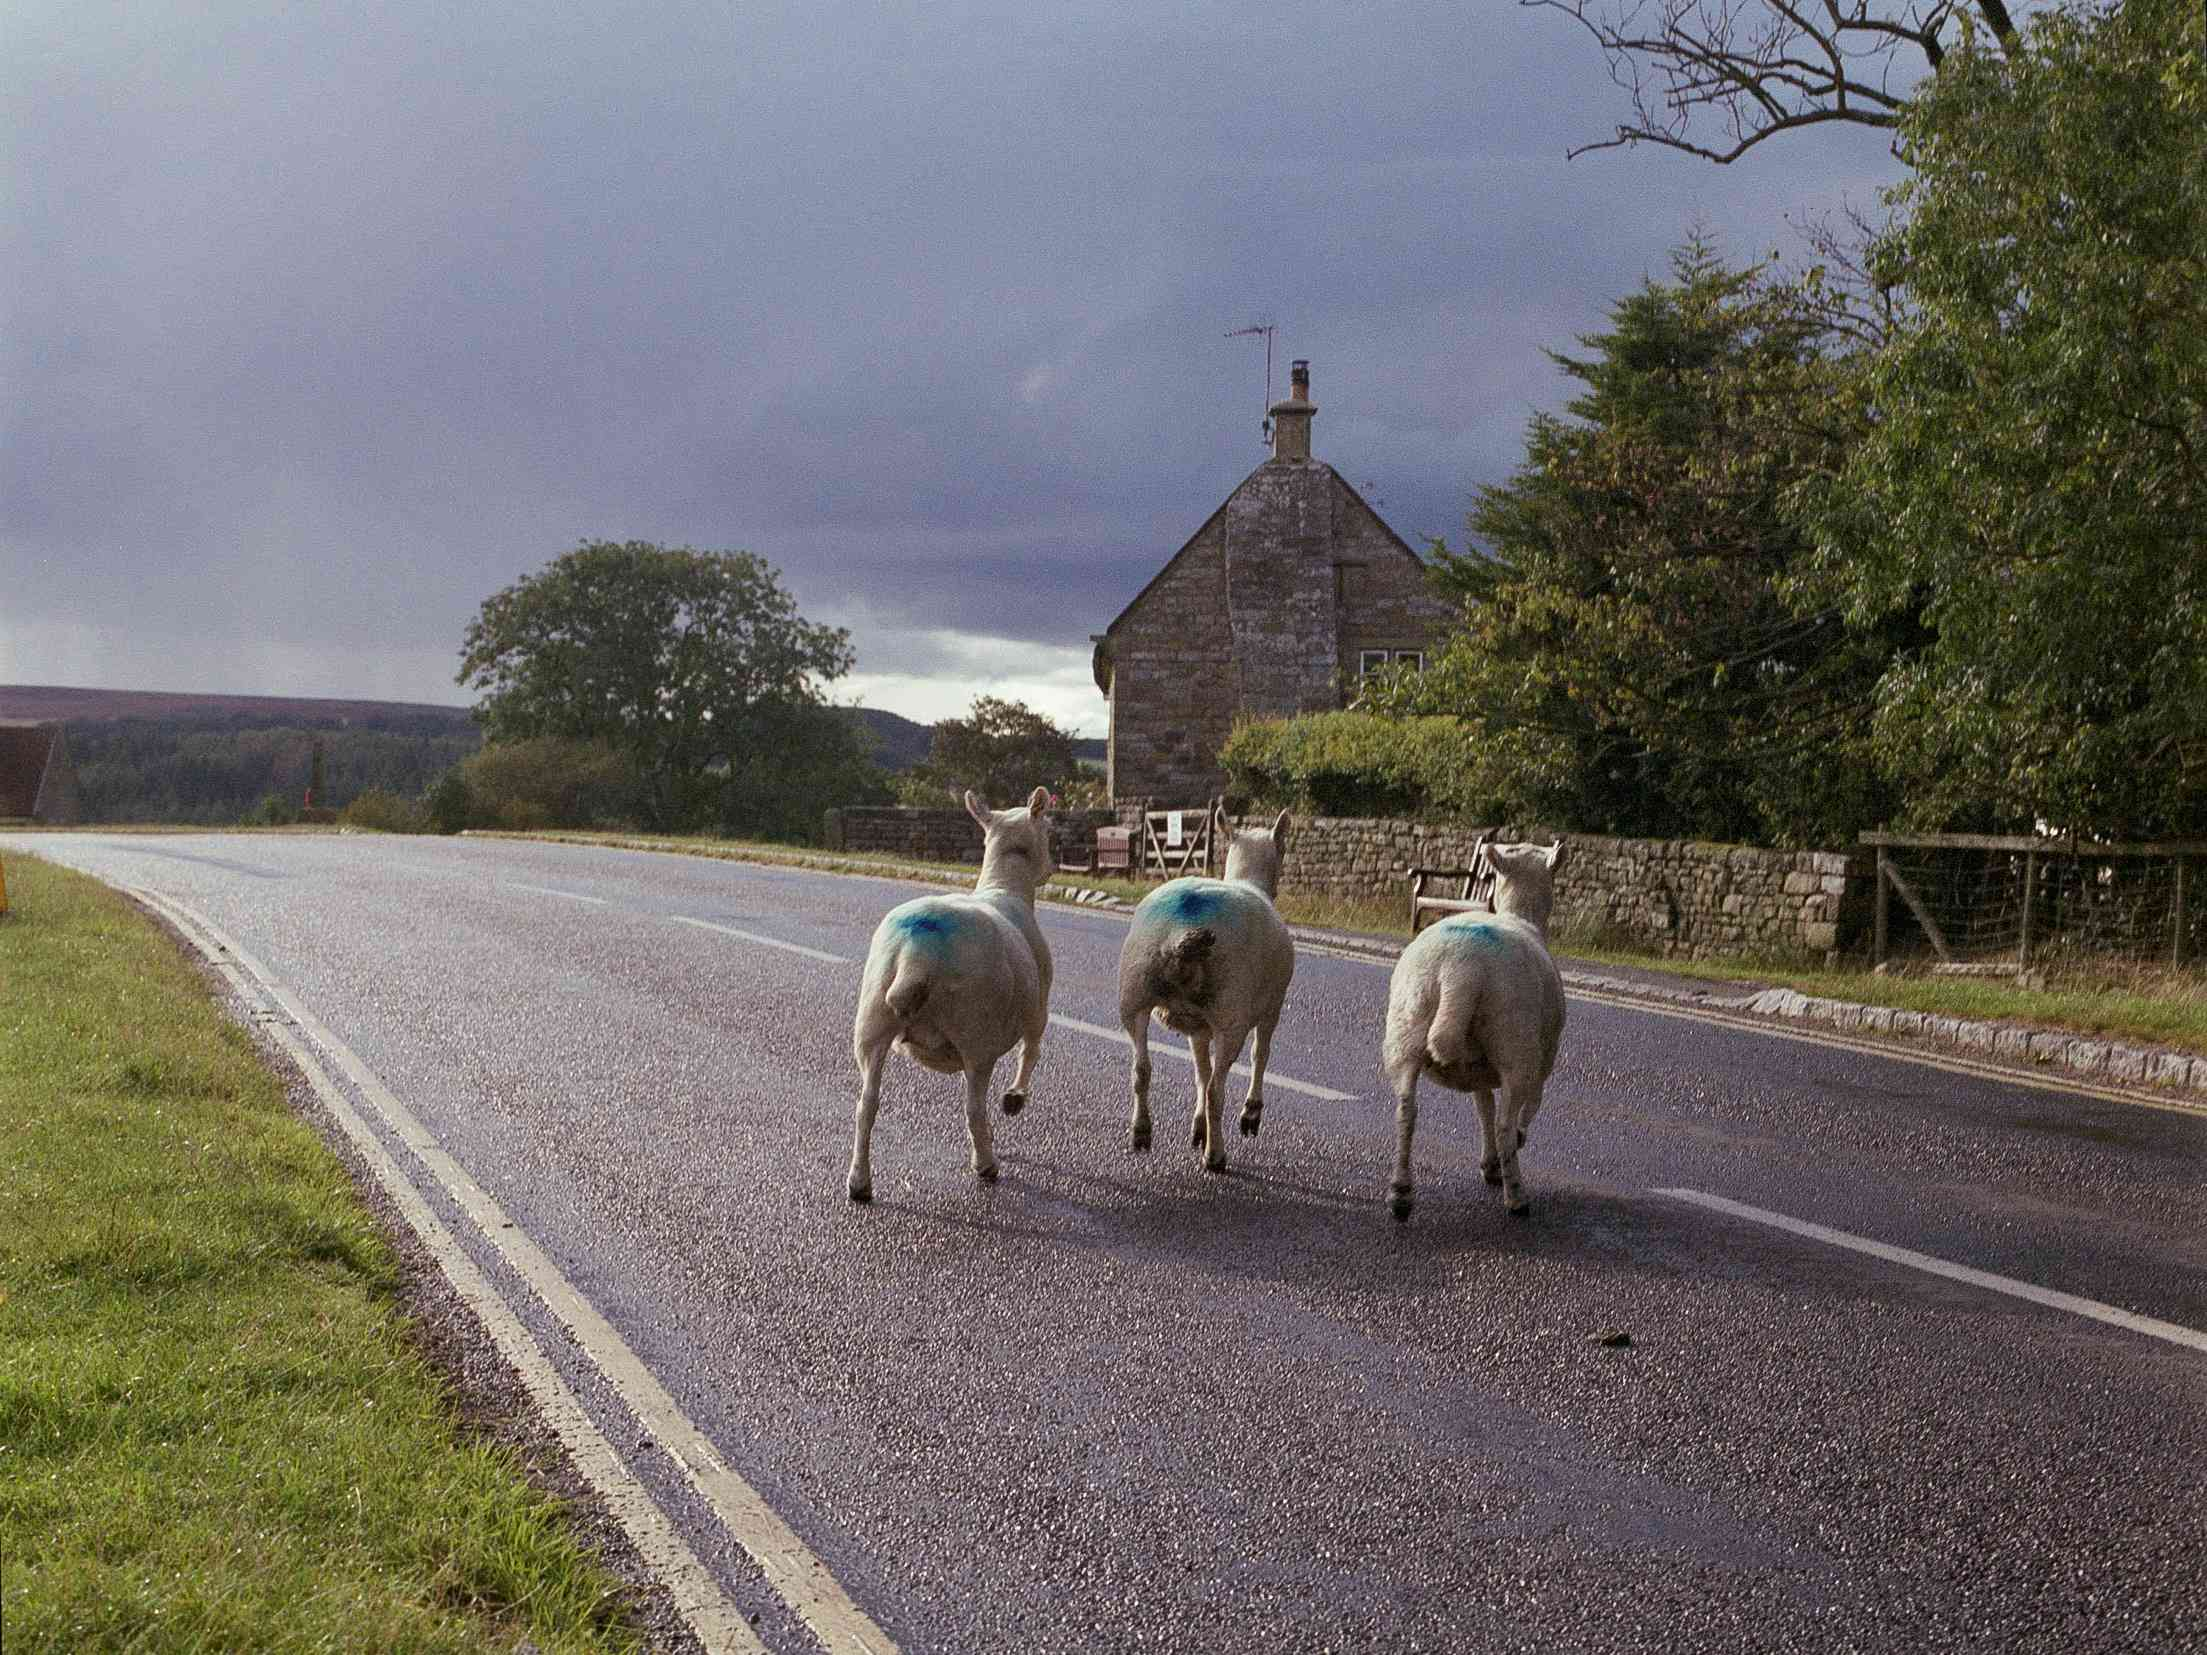 three sheep on the road in the English countryside